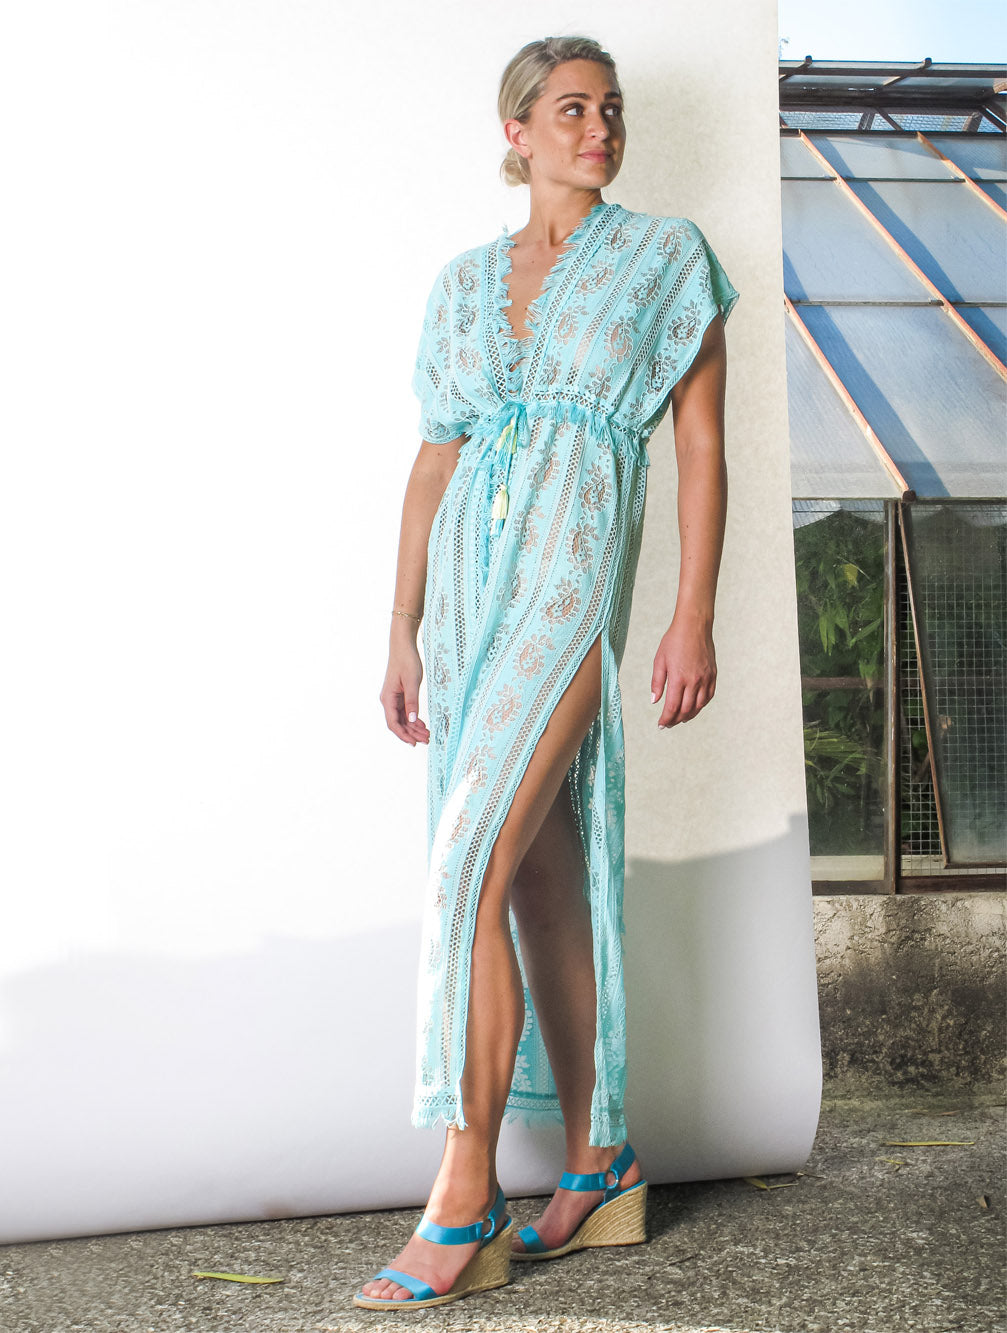 ROMEO OPEN KAFTAN - Kaia London